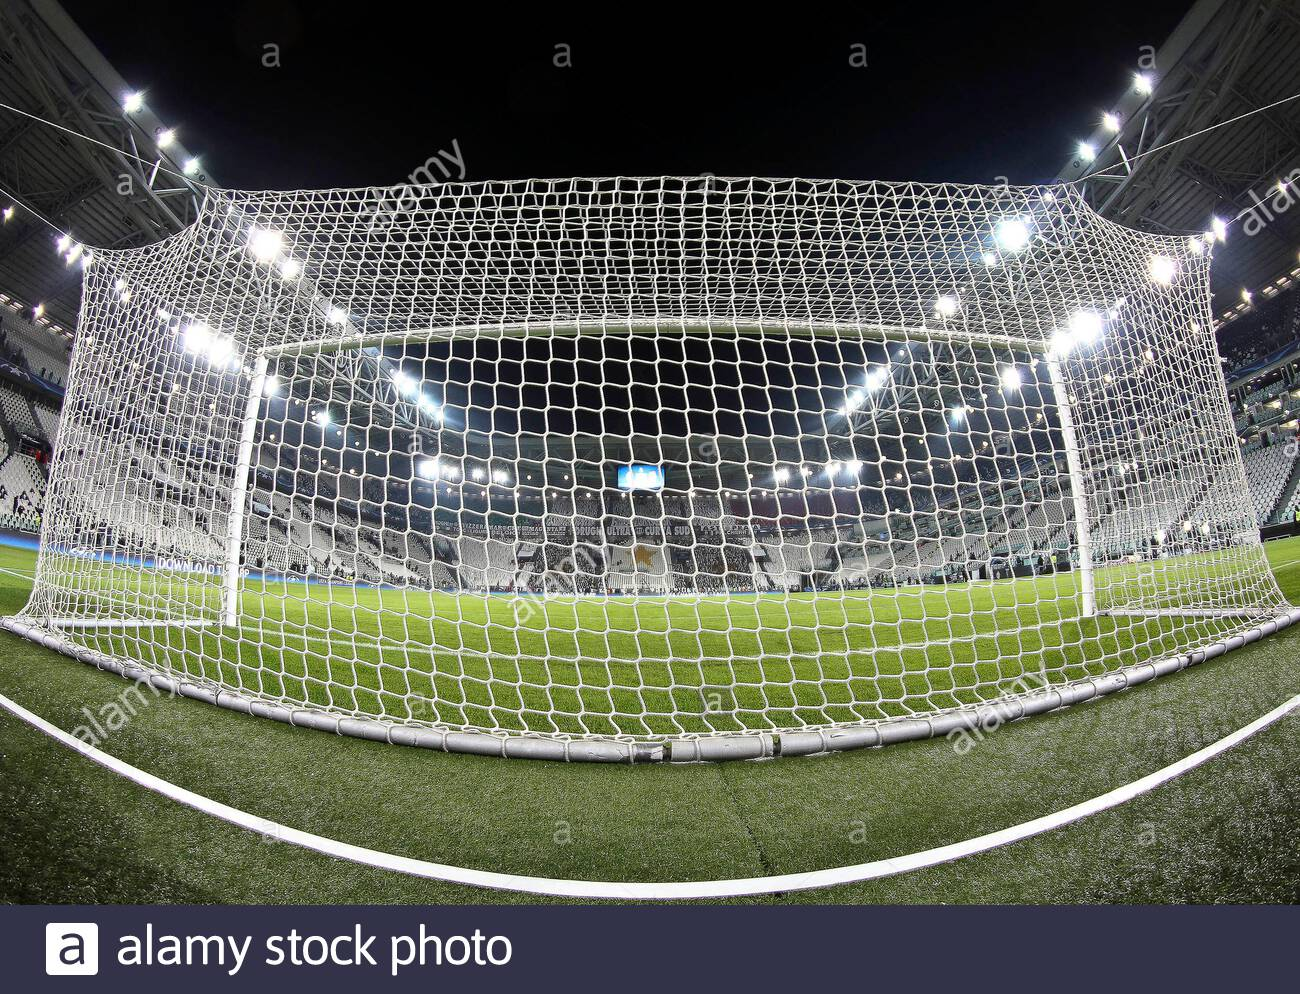 allianz stadium juventus stadium torino stock photo alamy https www alamy com allianz stadium juventus stadium torino image349750366 html